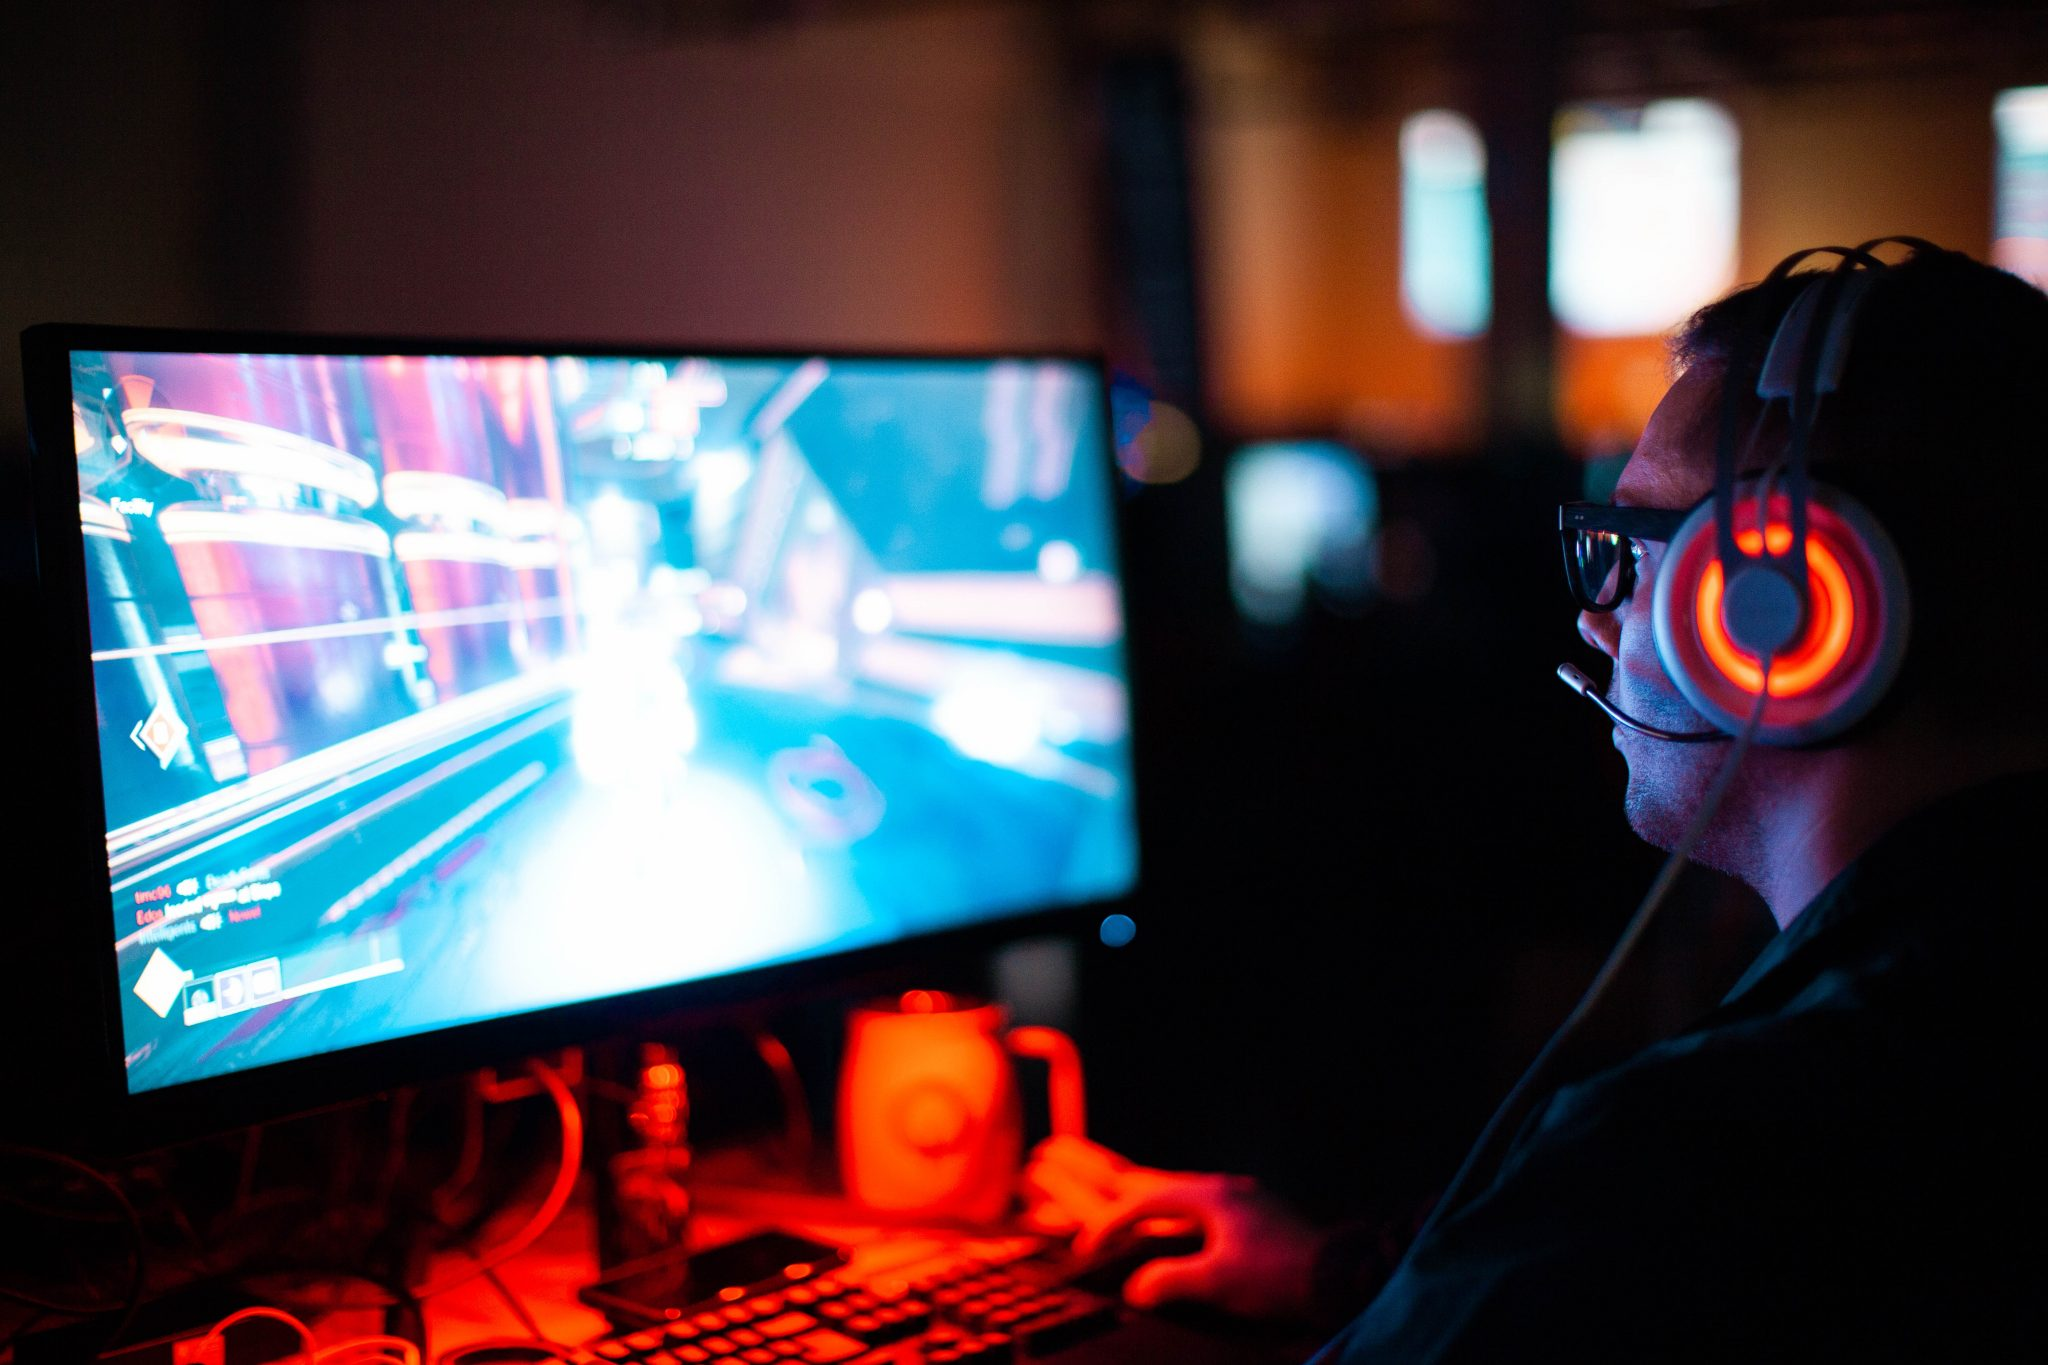 Sheffield's Sumo Group plc has retained us on a unique legal counsel opportunity in video gaming